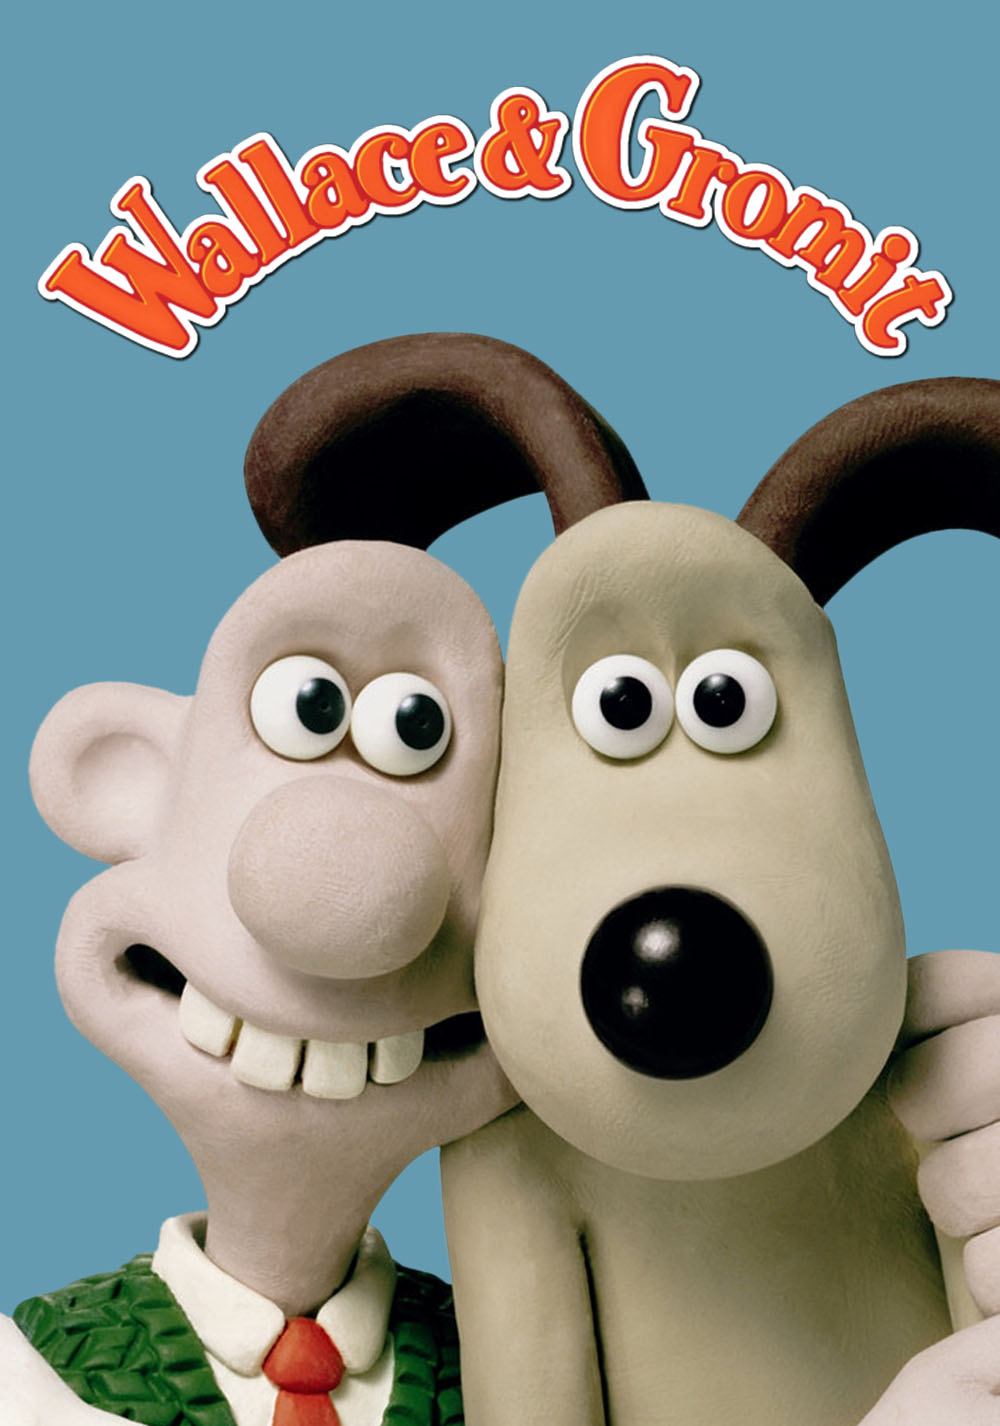 The Amazing World of Wallace and Gromit (1999)